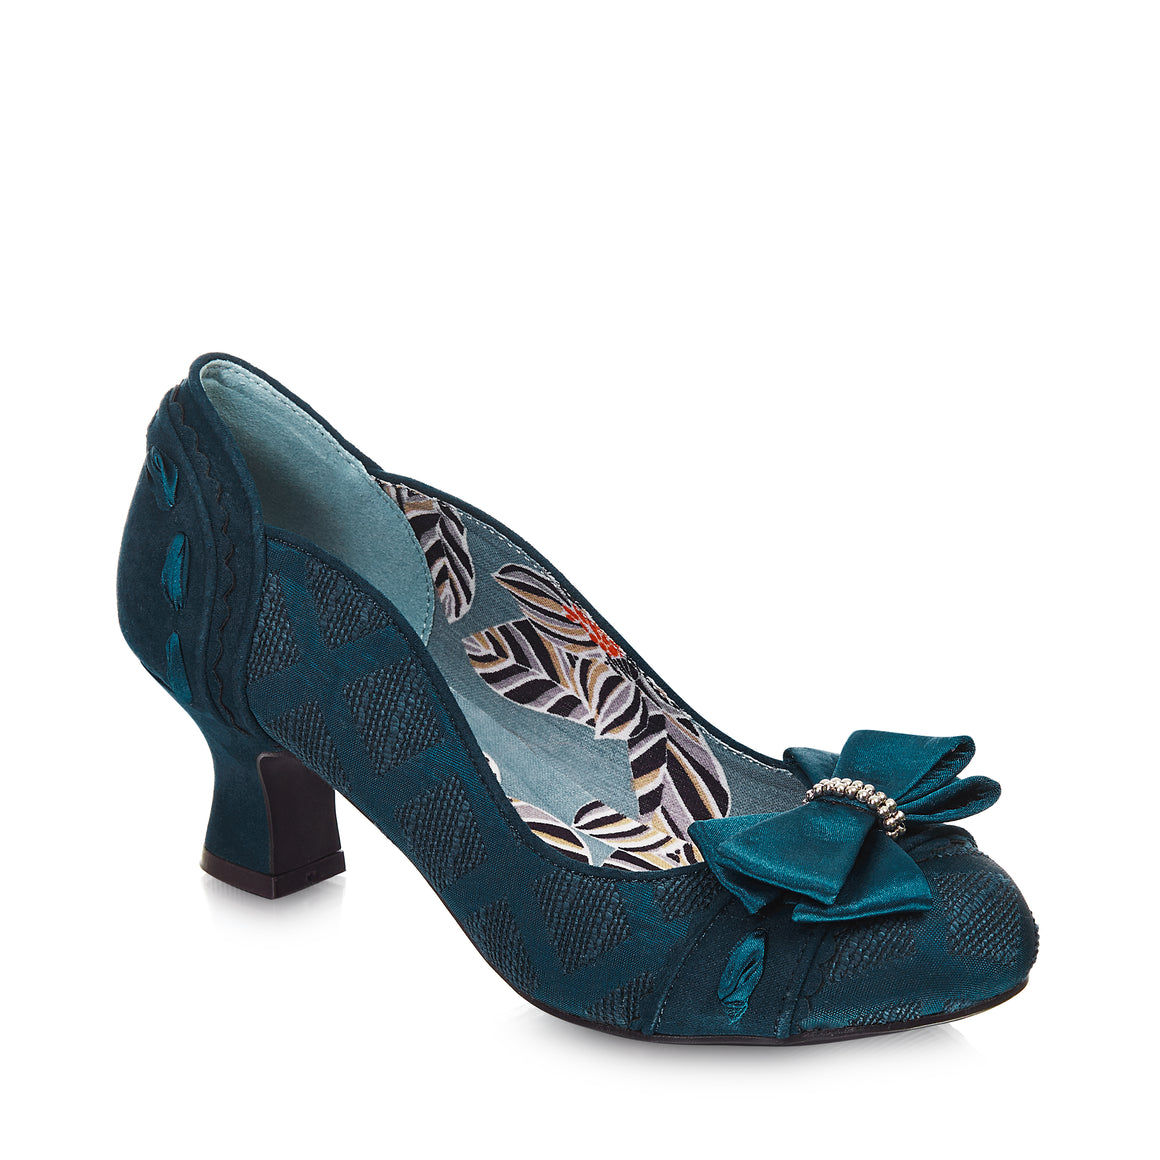 Ruby Shoo Rhea Teal Court Shoe